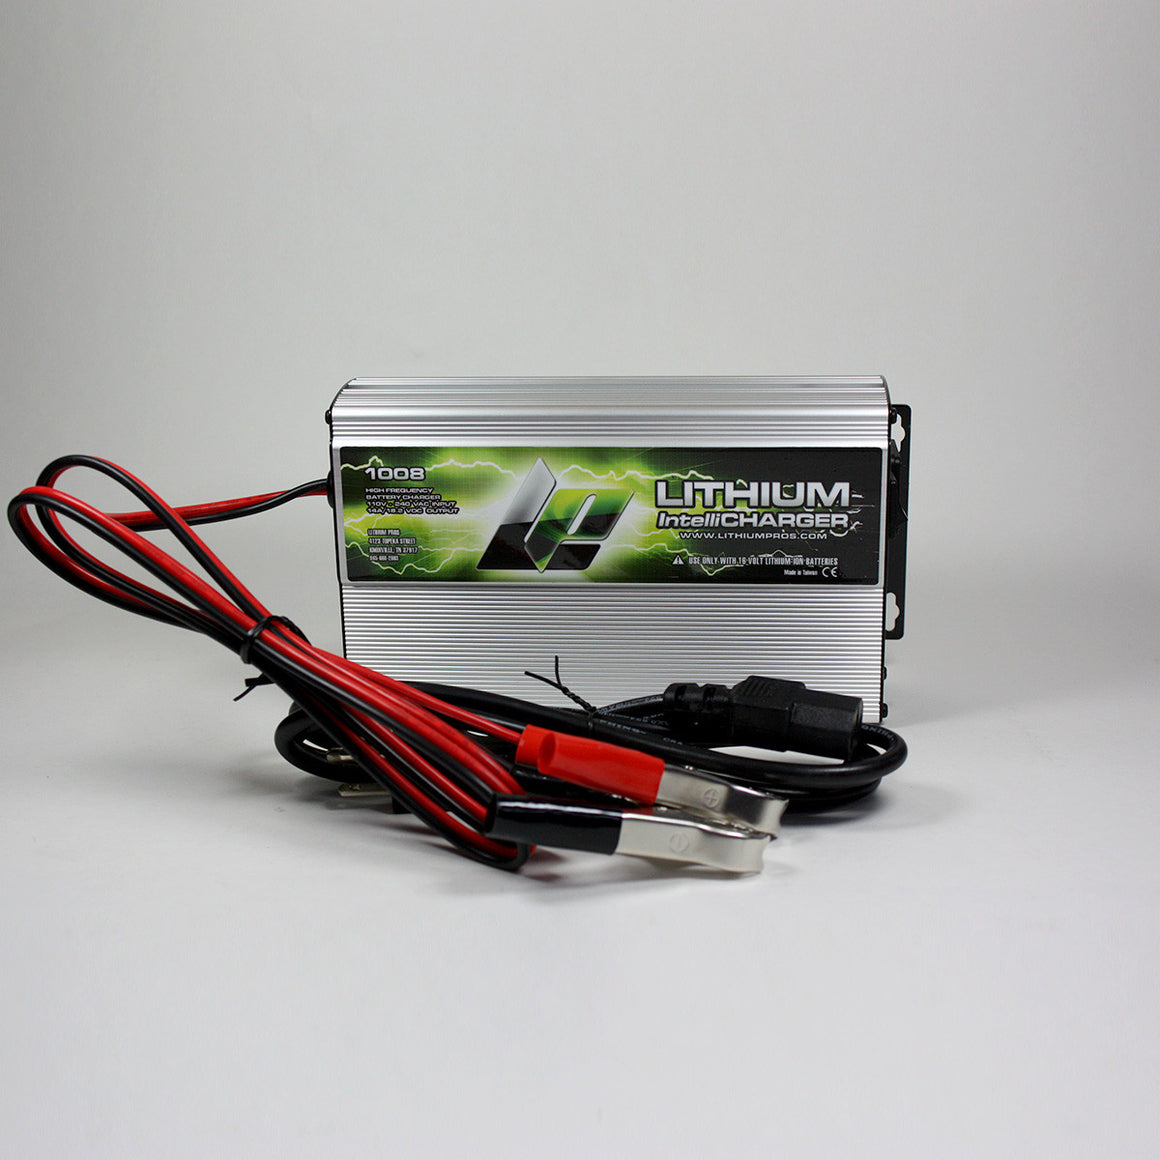 NEW/OPEN BOX LITHIUM PROS 1008 16V BATTERY CHARGER FOR LITHIUM BATTERY